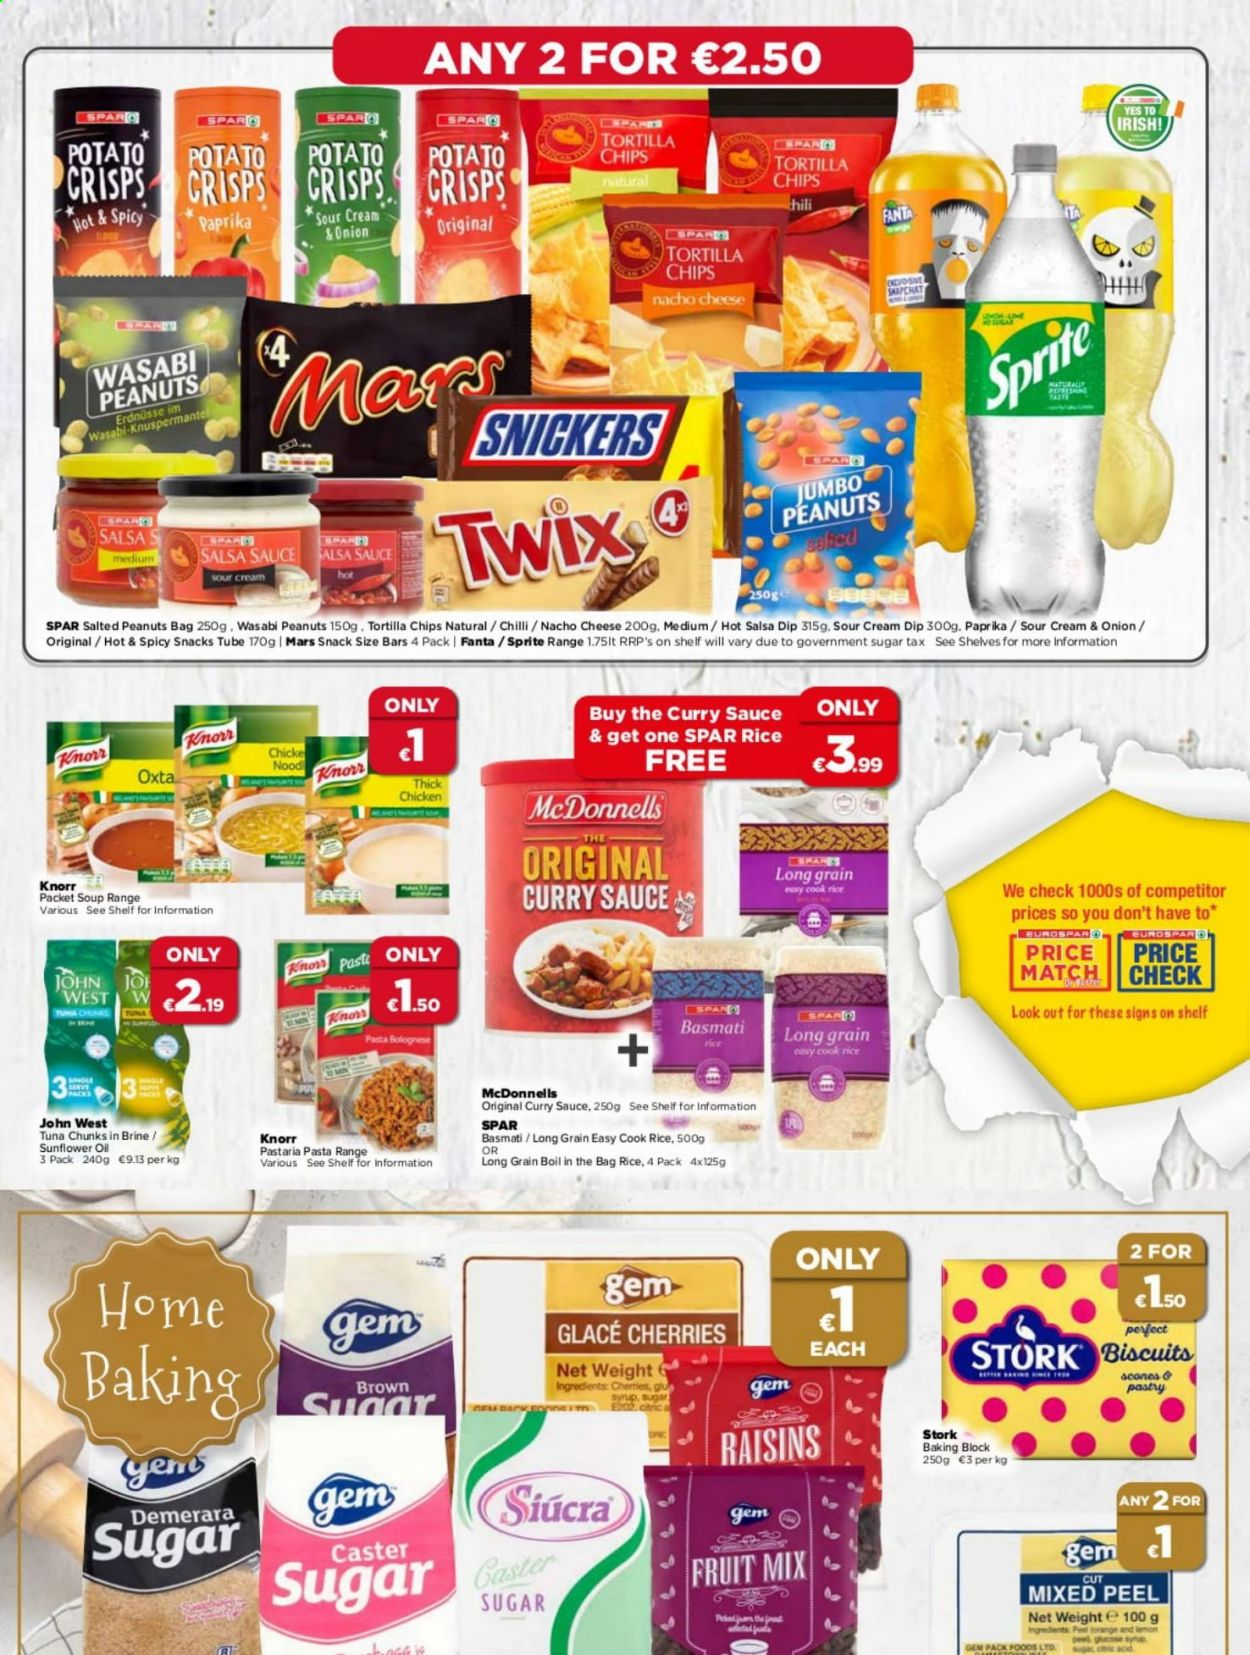 EUROSPAR offer  - 1.10.2020 - 21.10.2020 - Sales products - bag, basmati rice, biscuits, brown sugar, cream, demerara sugar, raisins, rice, shelves, sour cream, sprite, sugar, sunflower oil, tortilla chips, tuna, wasabi, potato crisps, cherries, chicken, peanuts, onion, chips, cheese, soup, snack, salsa, acid, fanta, pasta, knorr, sauce, snickers, twix, mars, orange, fruit mix, curry, fruit, sunflower, lemon, syrup. Page 5.